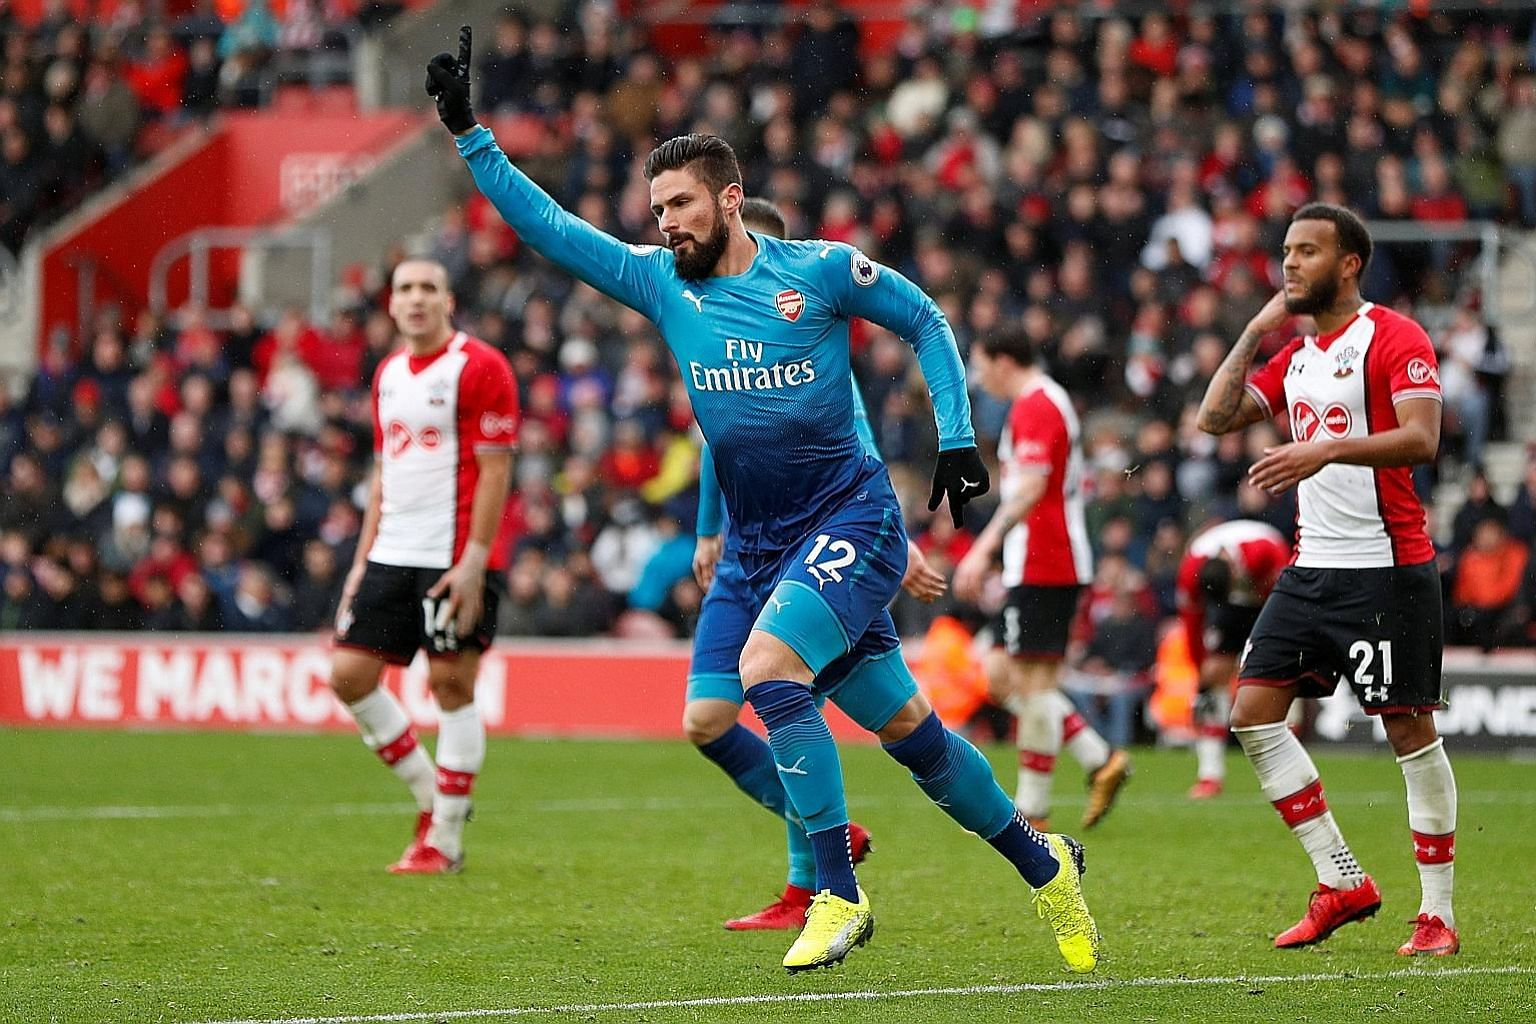 Arsenal's Olivier Giroud celebrates after scoring the 88th-minute equaliser in the 1-1 draw against Southampton yesterday.